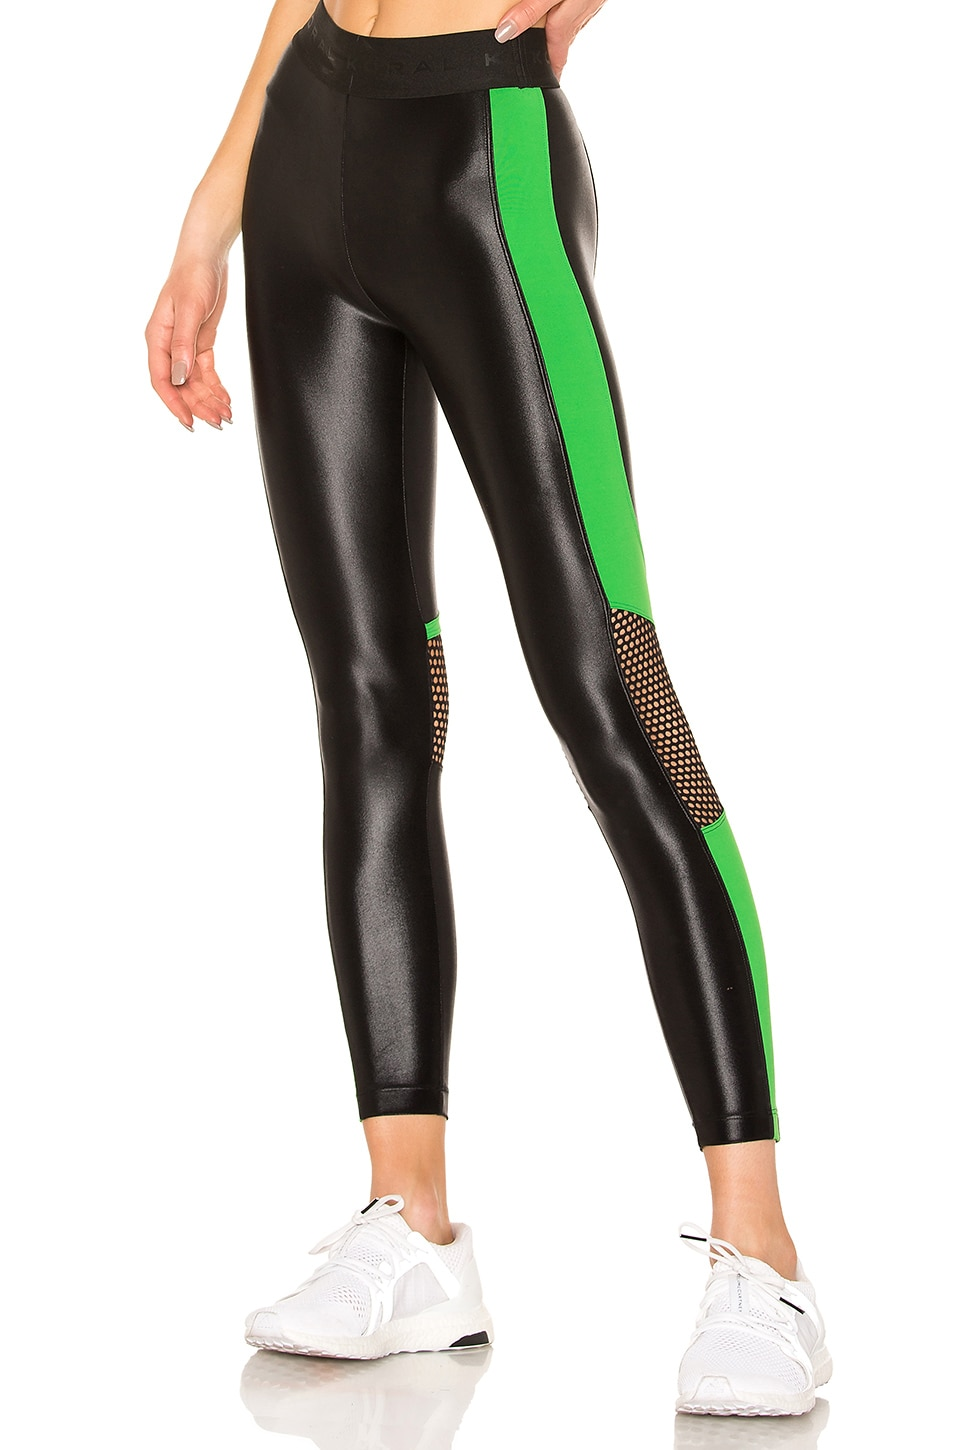 KORAL Emblem Infinity Cropped Legging in Black & Verde